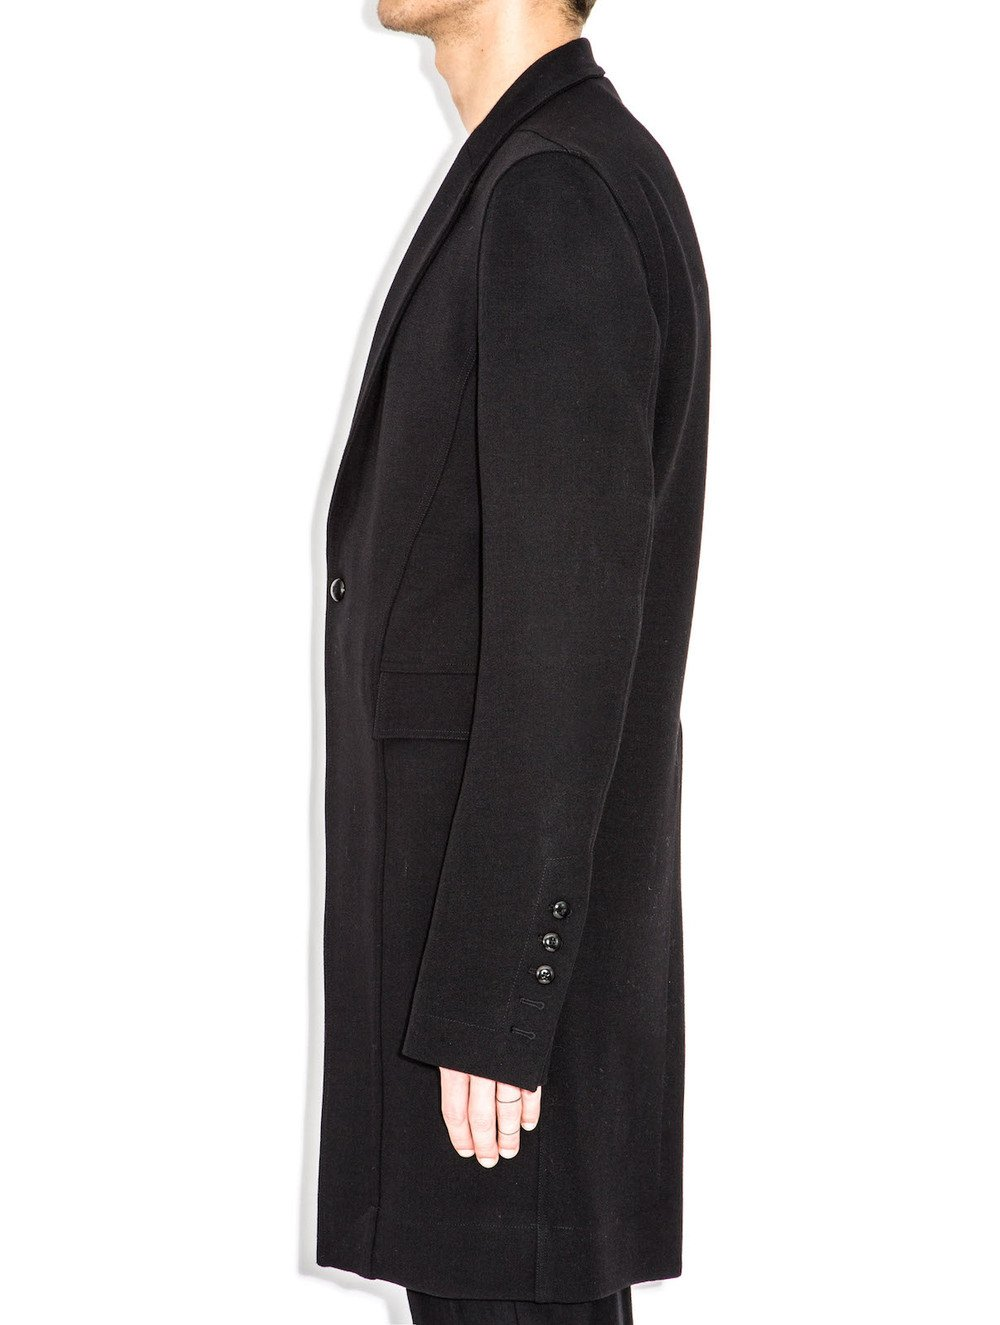 rick owens black jacket